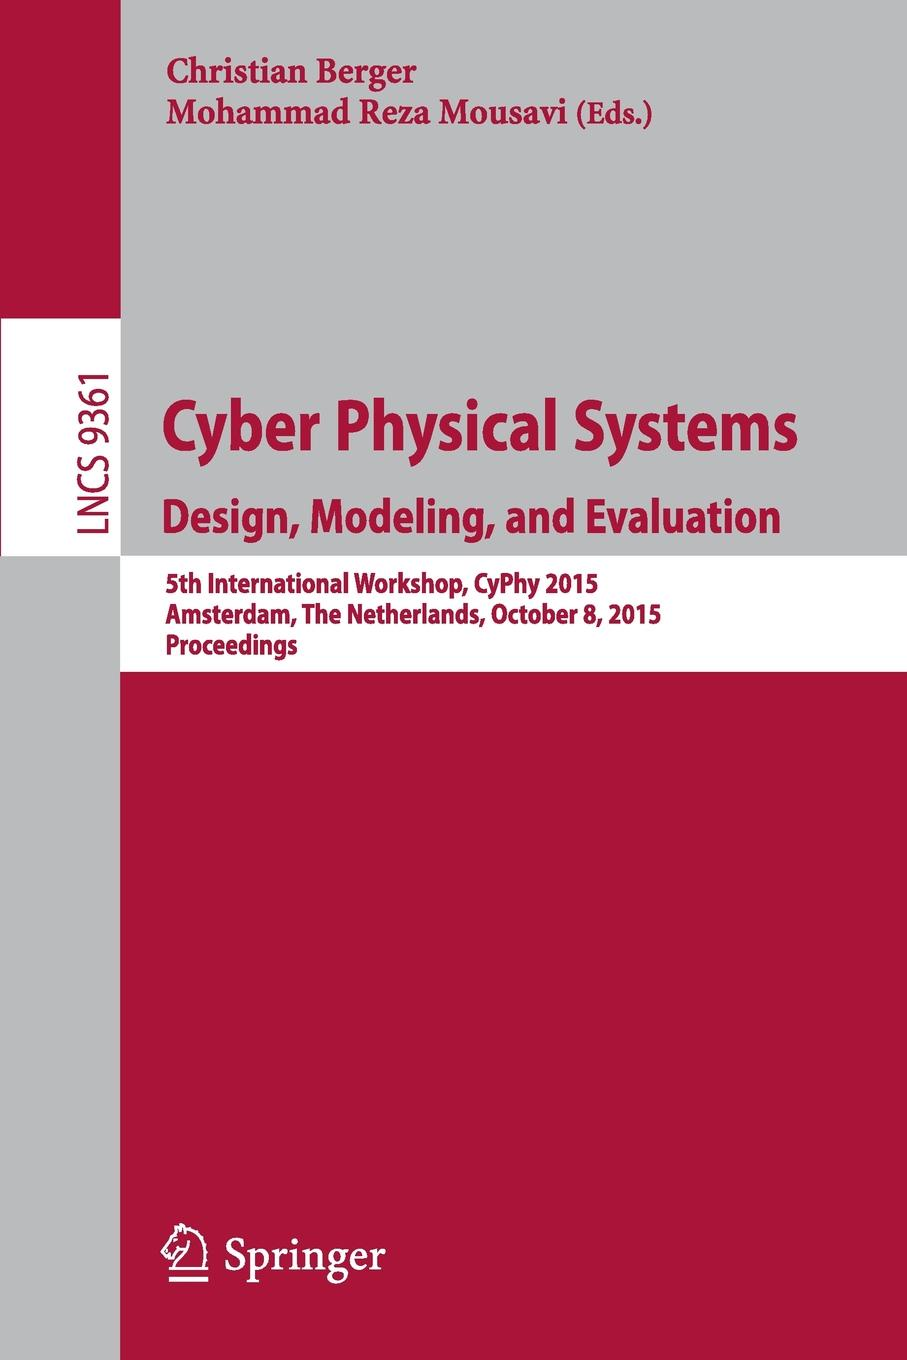 Cyber Physical Systems. Design, Modeling, and Evaluation. 5th International Workshop, CyPhy 2015, Amsterdam, The Netherlands, October 8, 2015, Proceedings cyber physical systems of systems foundations a conceptual model and some derivations the amadeos legacy